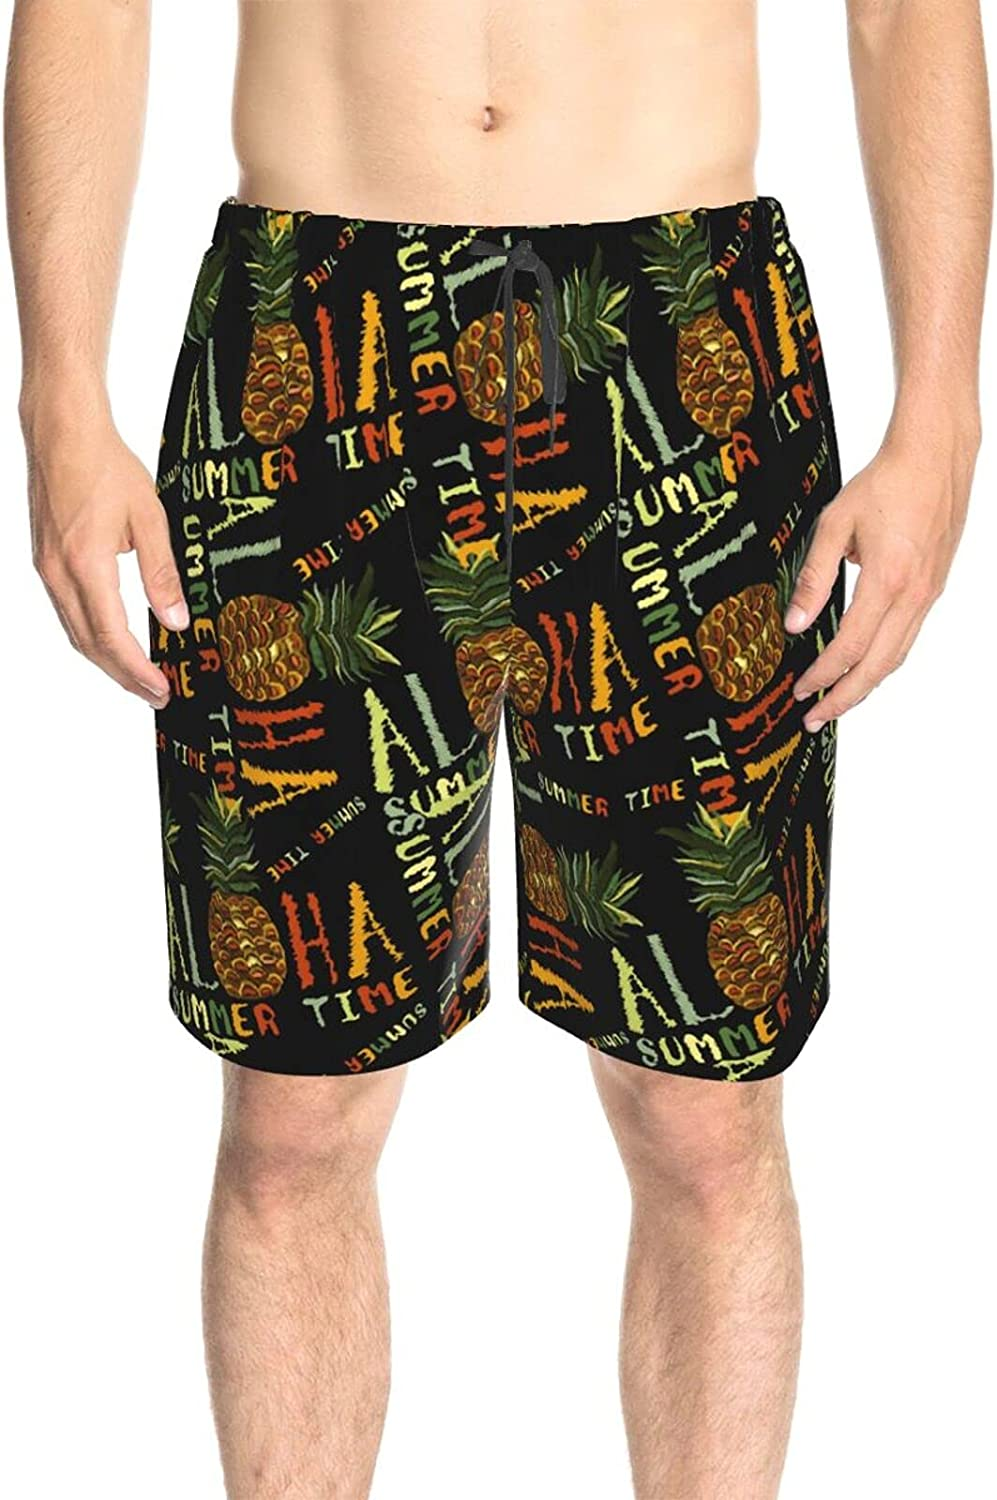 Men's Swim Trunks Aloha Tropical Summer Pineapple Beach Board Shorts Quick Dry Comfy Surfing Board Shorts with Lining